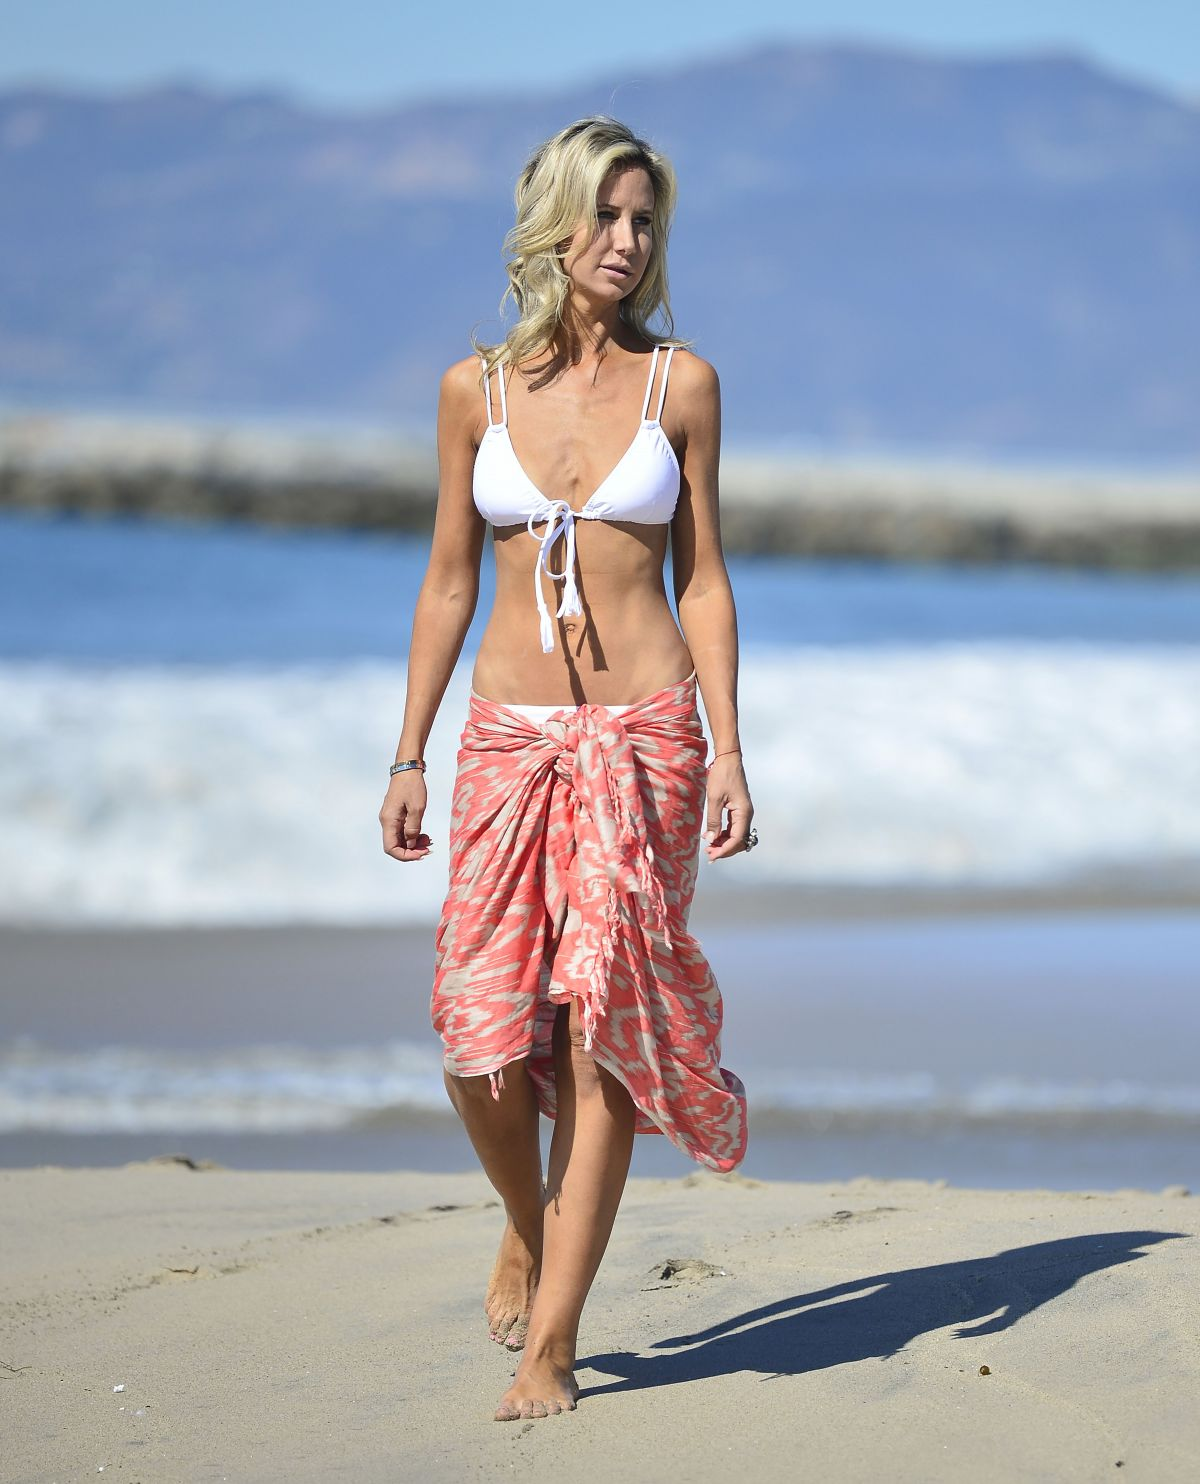 Snapchat Lady Victoria Hervey nudes (94 photos), Topless, Cleavage, Instagram, cleavage 2015